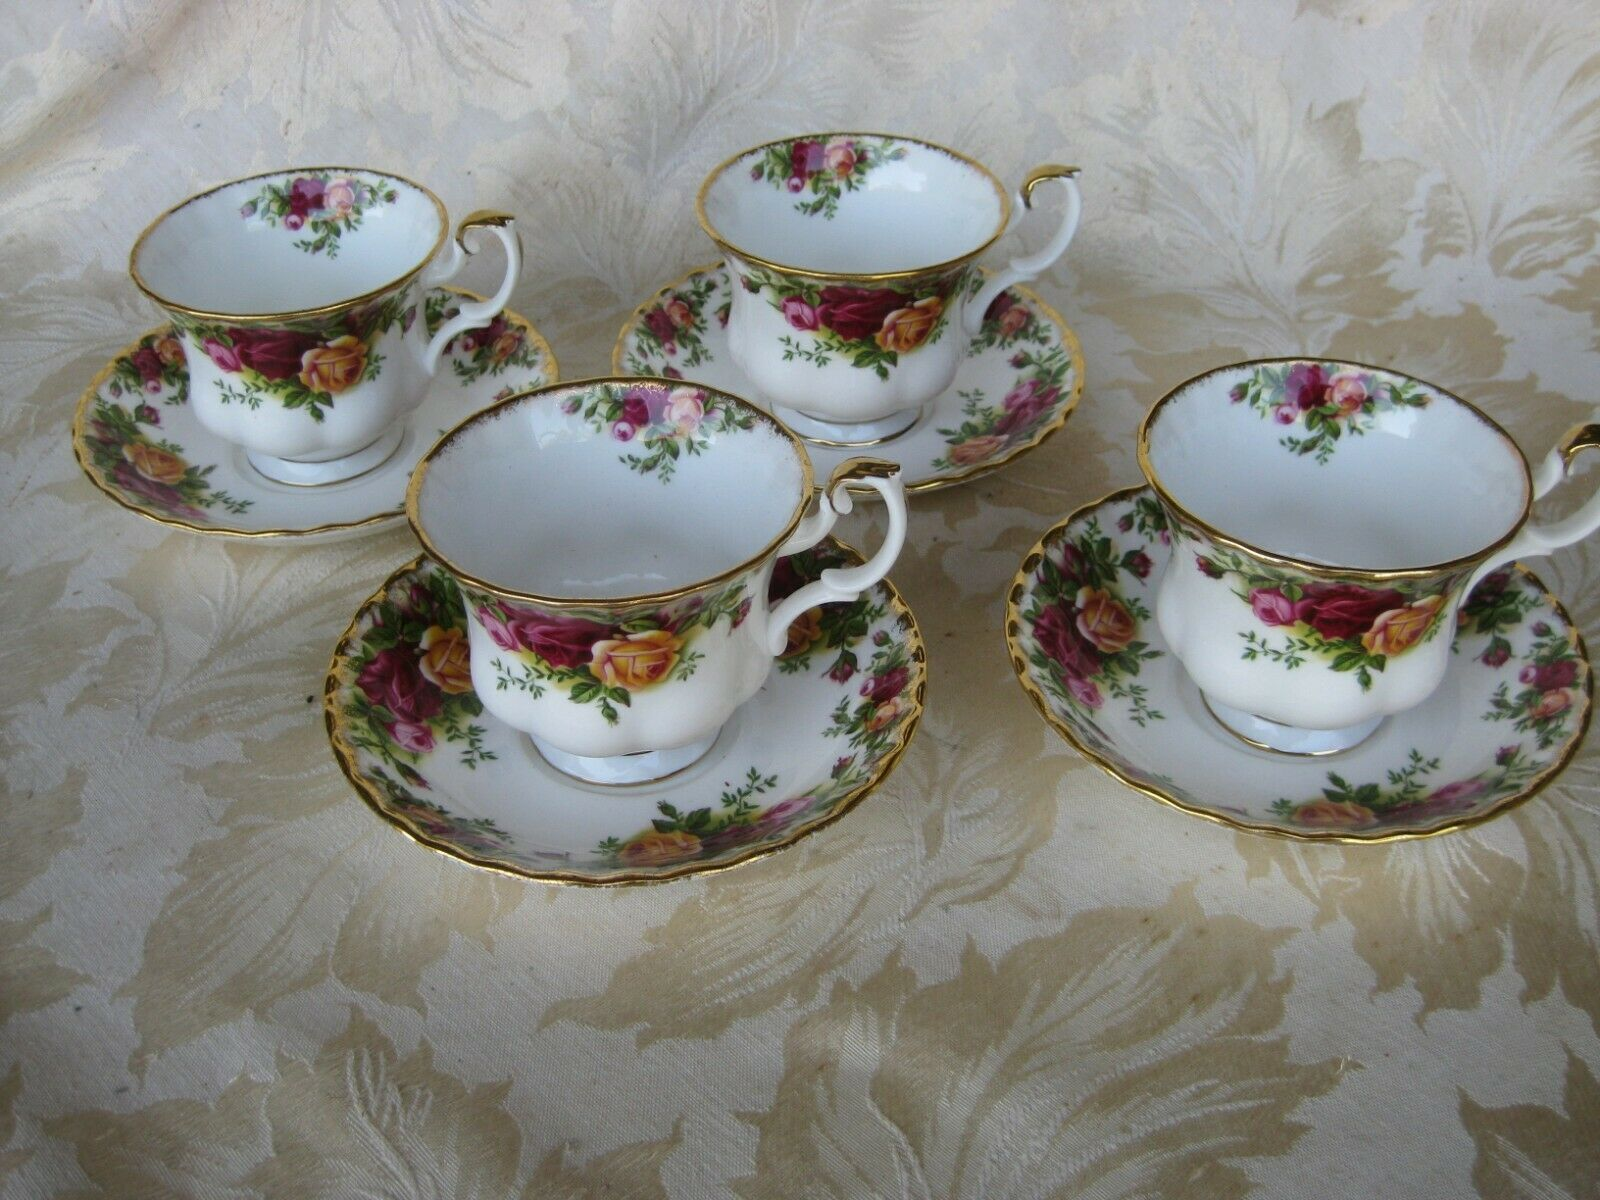 Beautiful Set Of 4 Royal Albert Old Country Roses Cups Saucers - $45.00